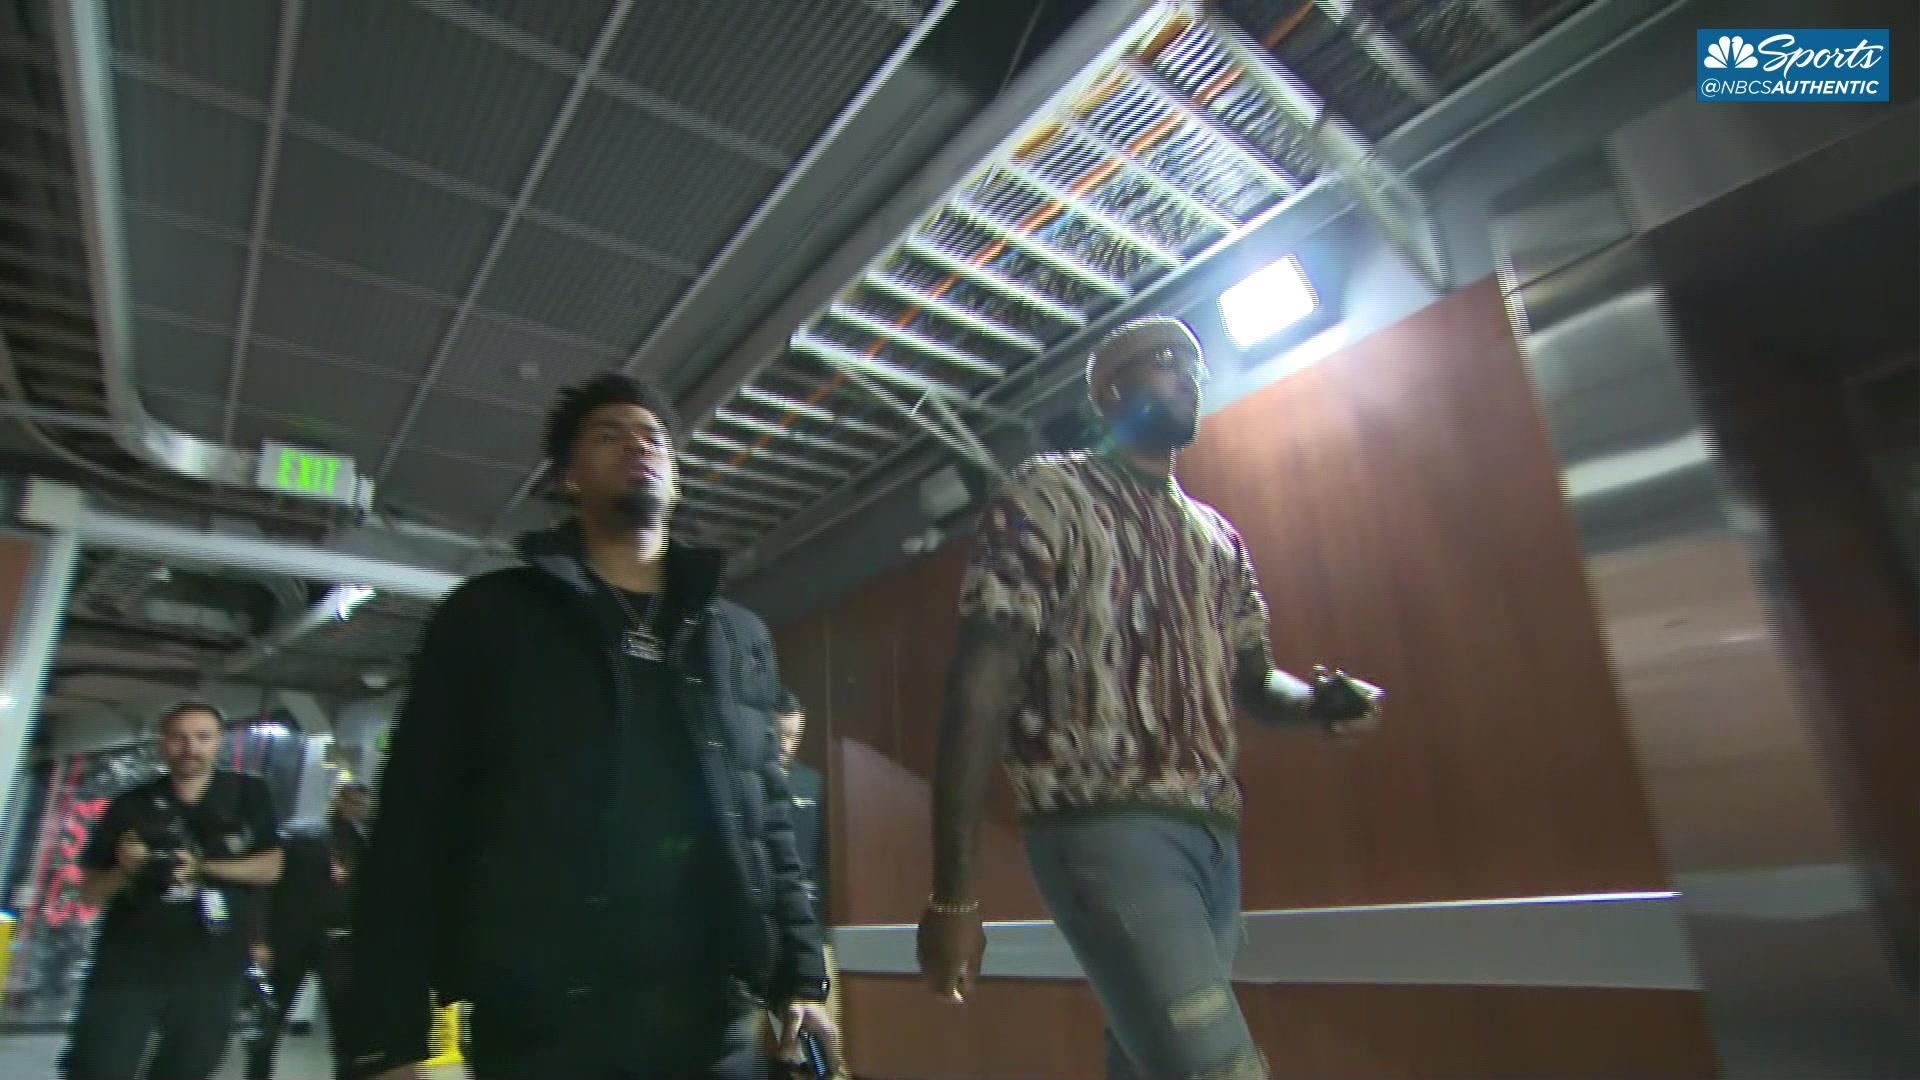 DeMarcus Cousins arrives at Staples Center for his Warriors debut